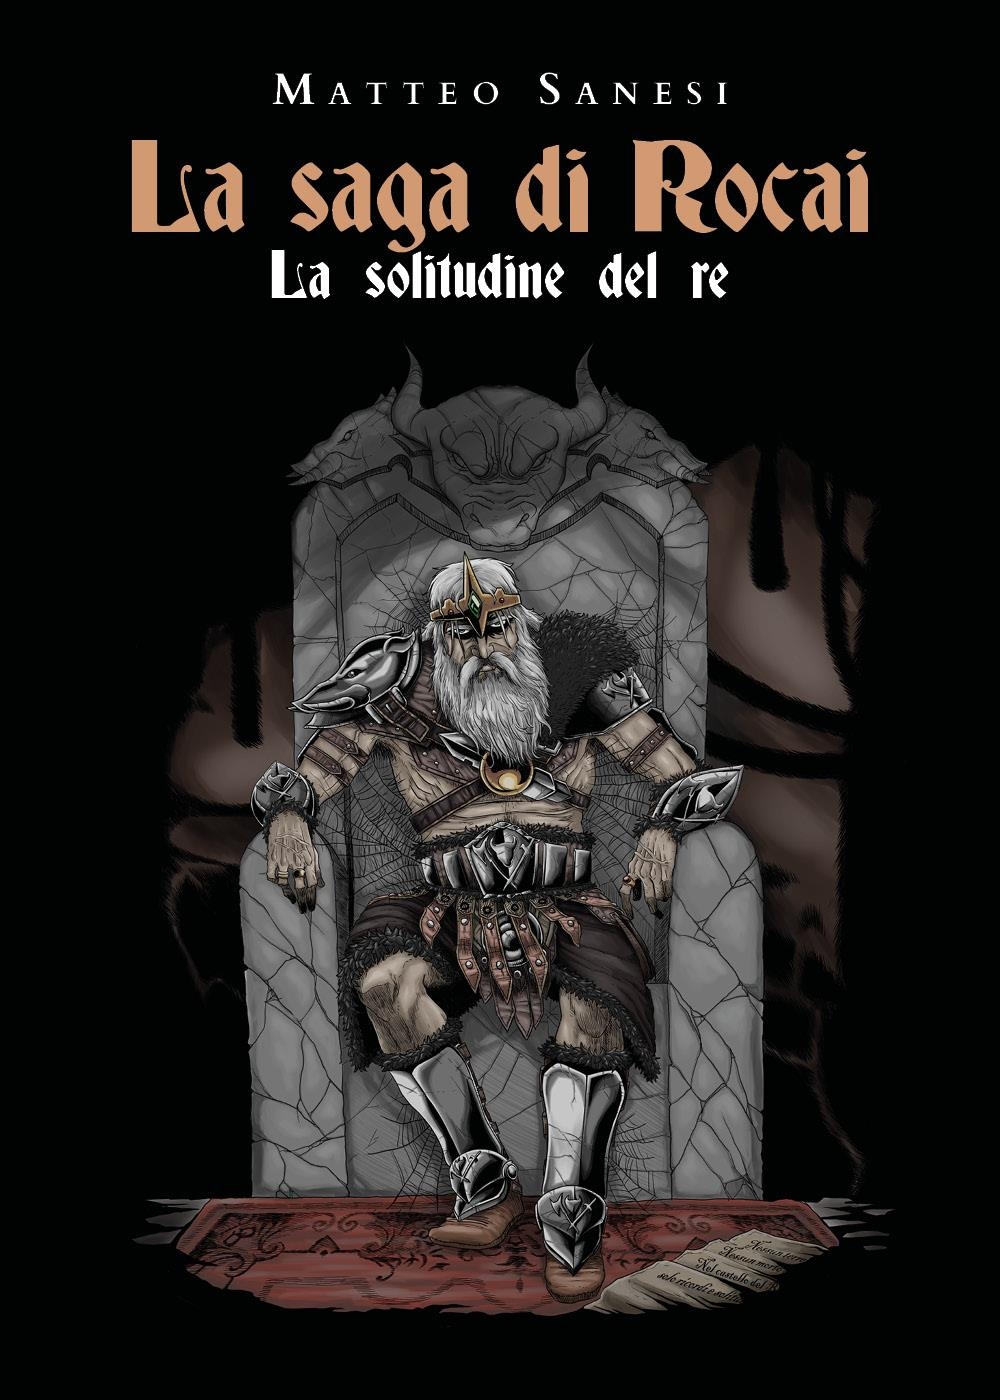 La saga di Rocai - La solitudine del re